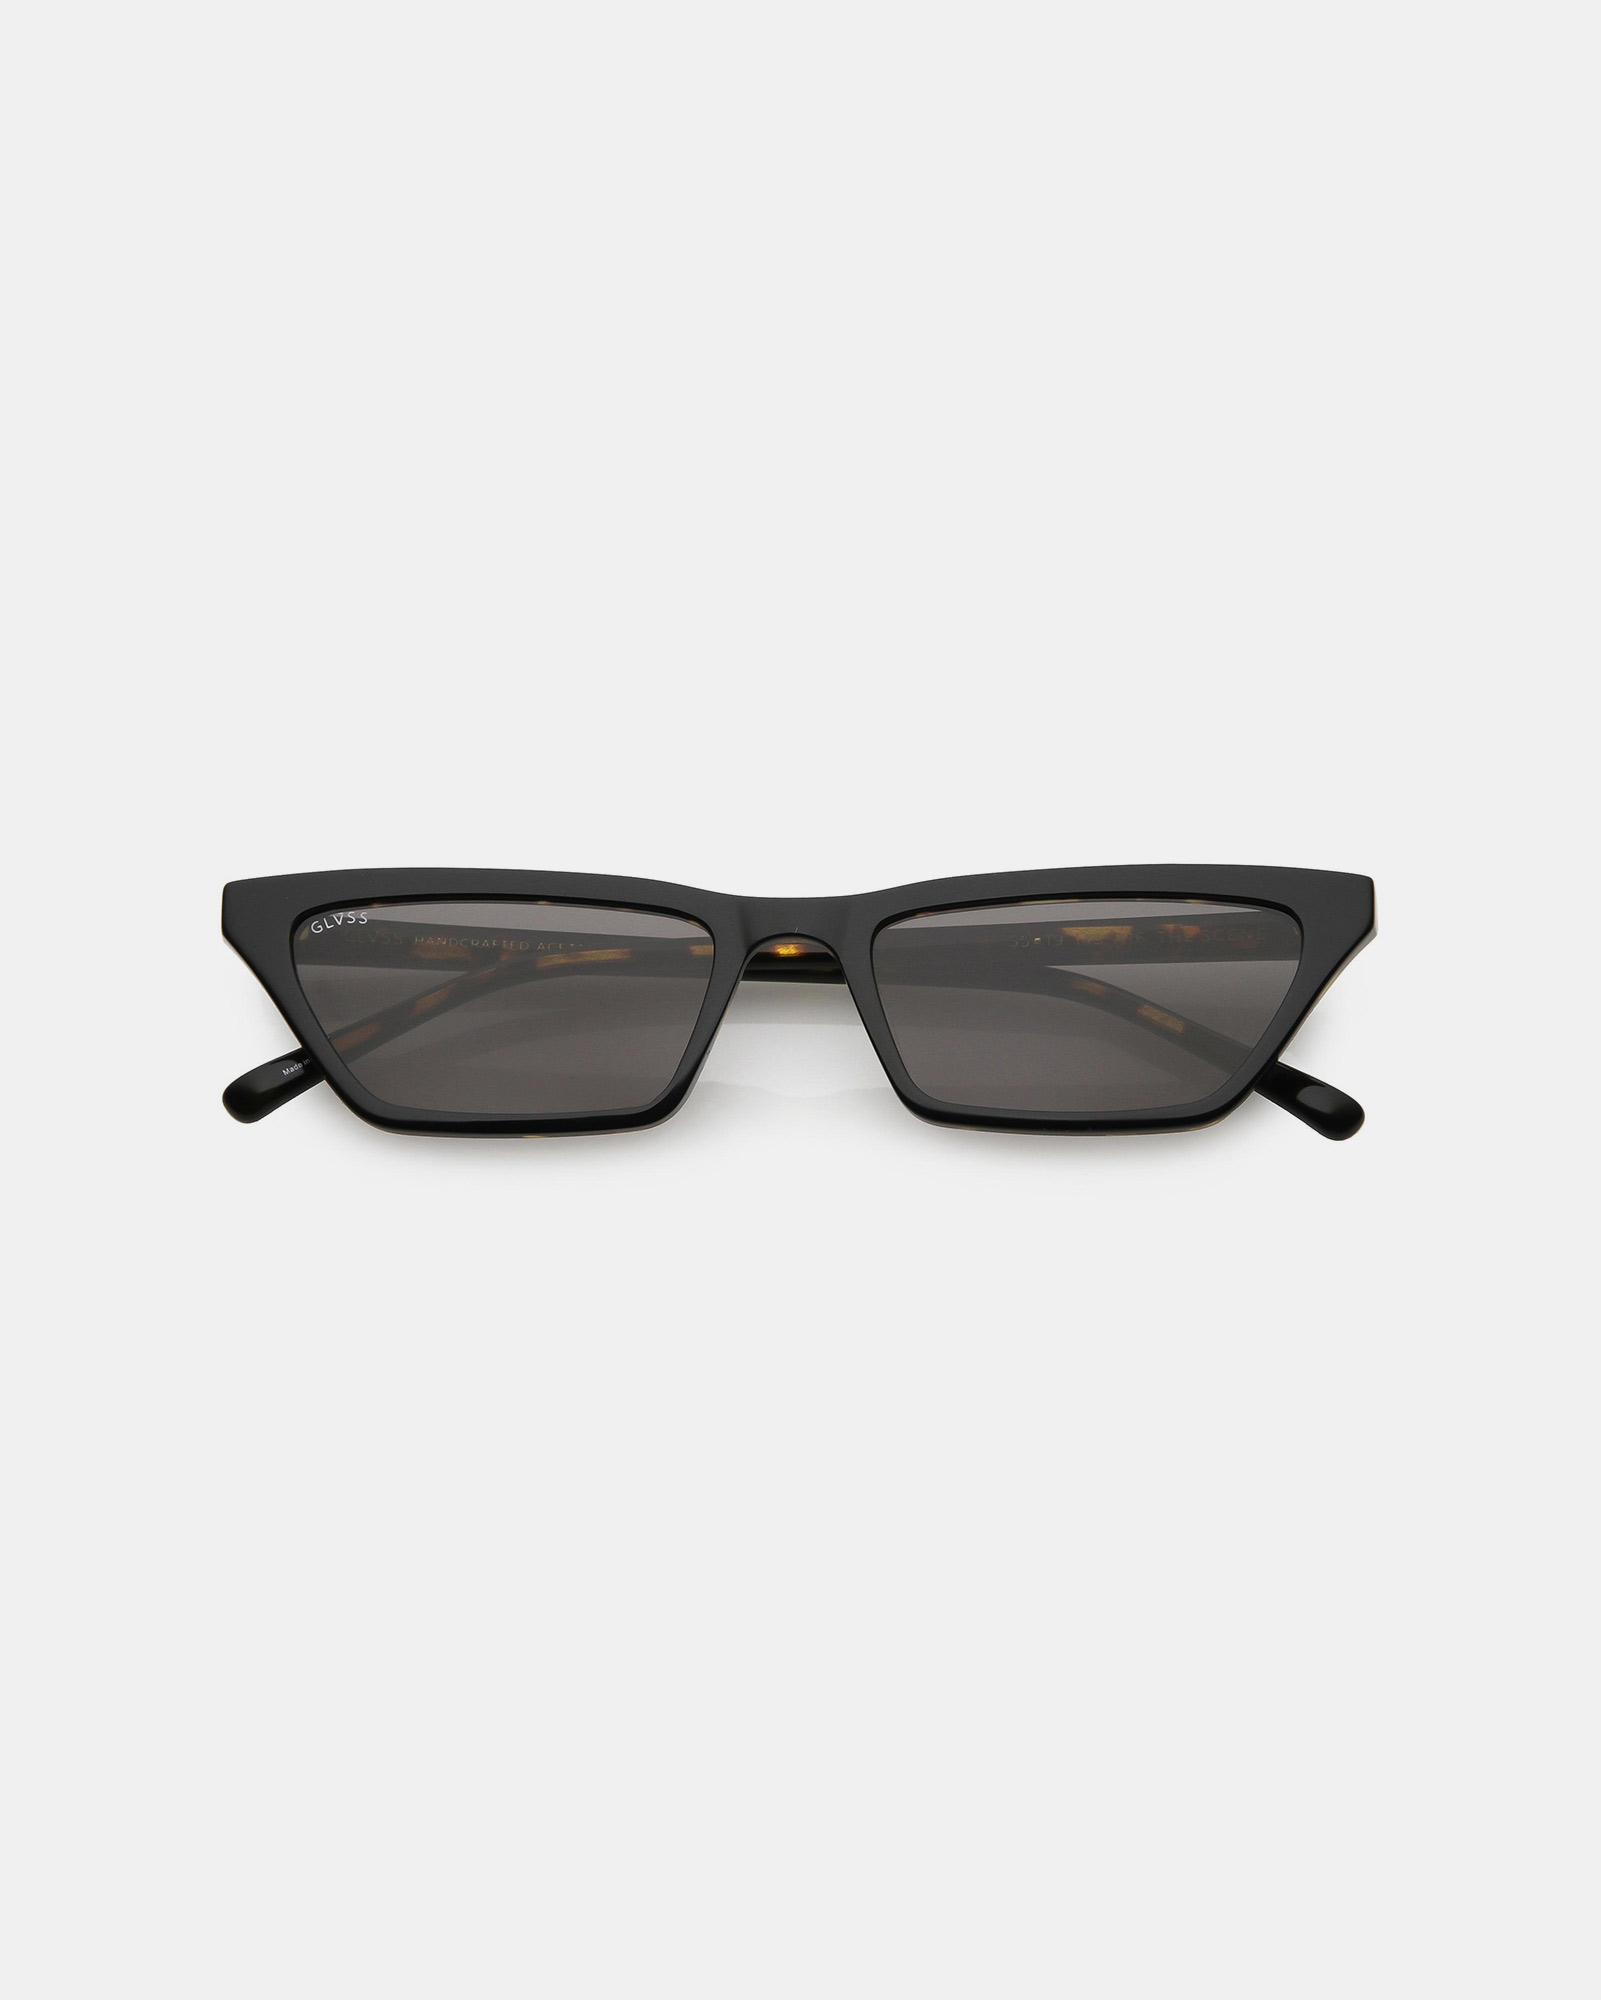 GLVSS The Scene Black-Tortoise Smoke Sunglasses